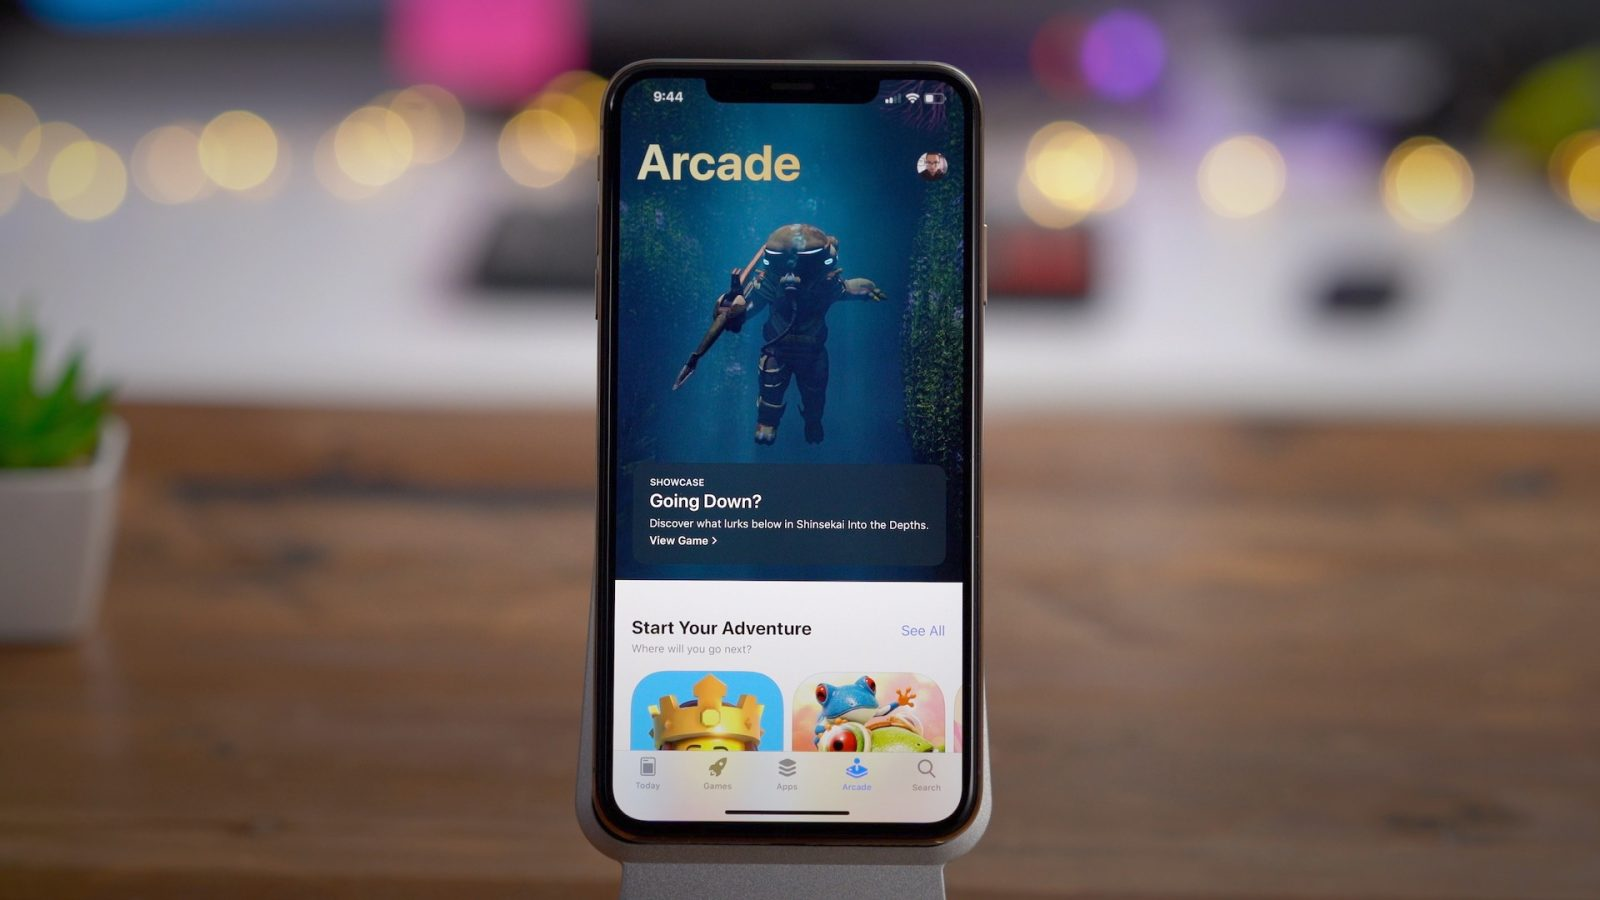 Poll: What are your impressions of Apple Arcade so far?